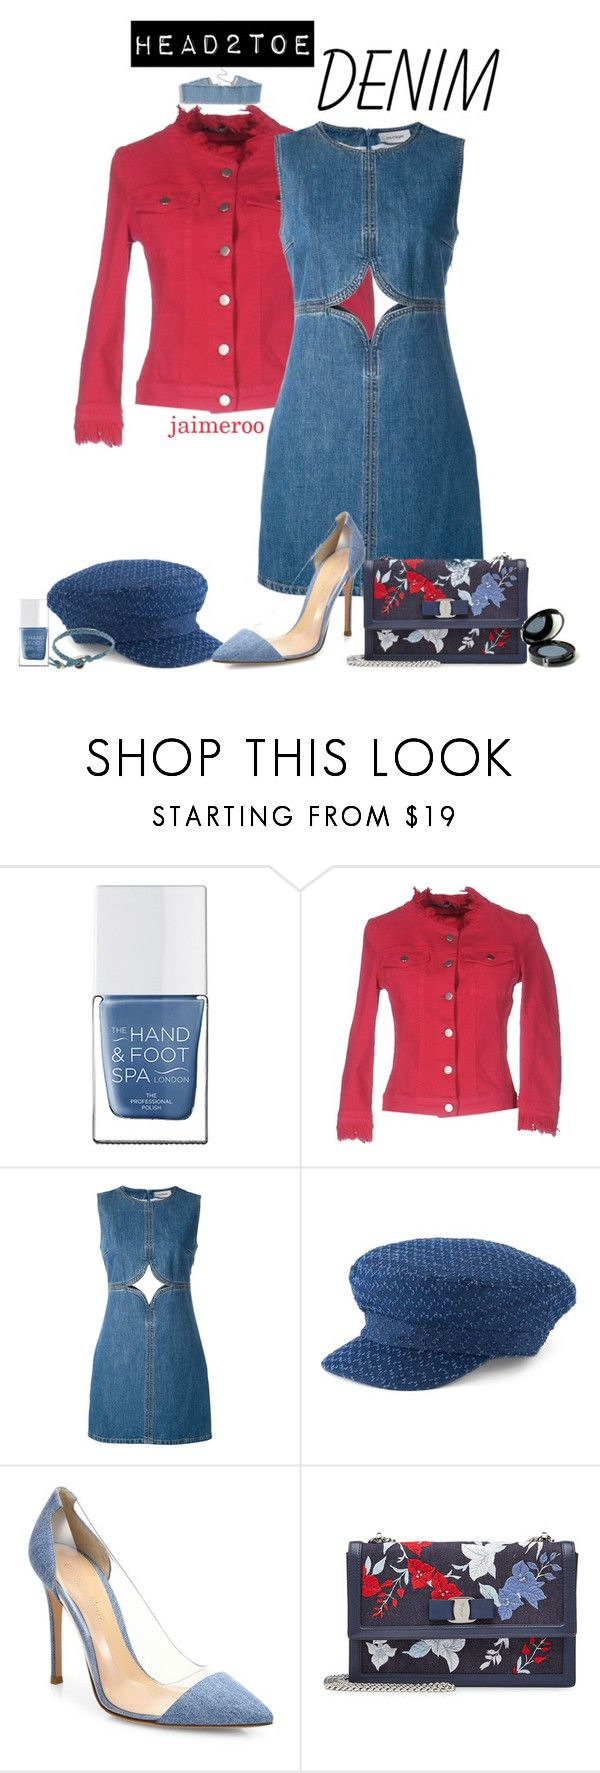 """""""head2toe DENIM"""" by jaimeroo ❤ liked on Polyvore featuring The Hand & Foot Spa, Pianurastudio, Courrèges, SONOMA Goods for Life, Gianvito Rossi, Salvatore Ferragamo and Nvey Eco"""